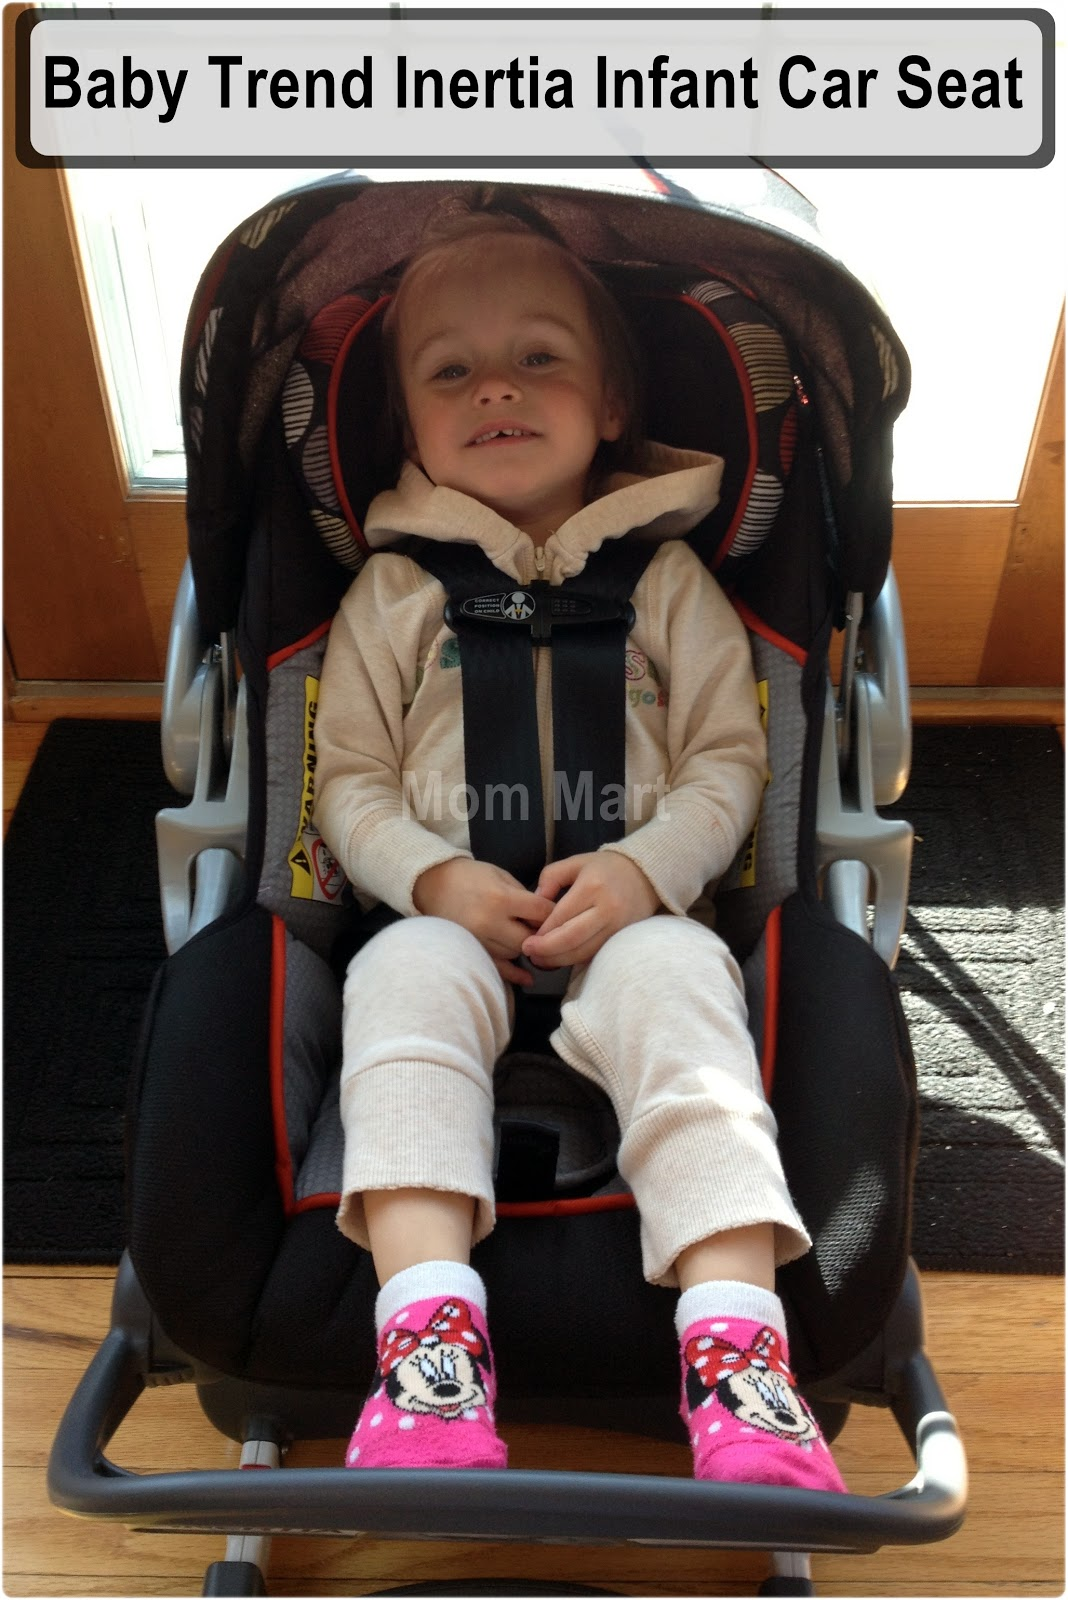 Princess Abby in the Baby Trend Inertia Infant Car Seat Canopy  sc 1 st  Mom Mart - Blogspot & Mom Mart: Baby Trend Inertia Infant Car Seat